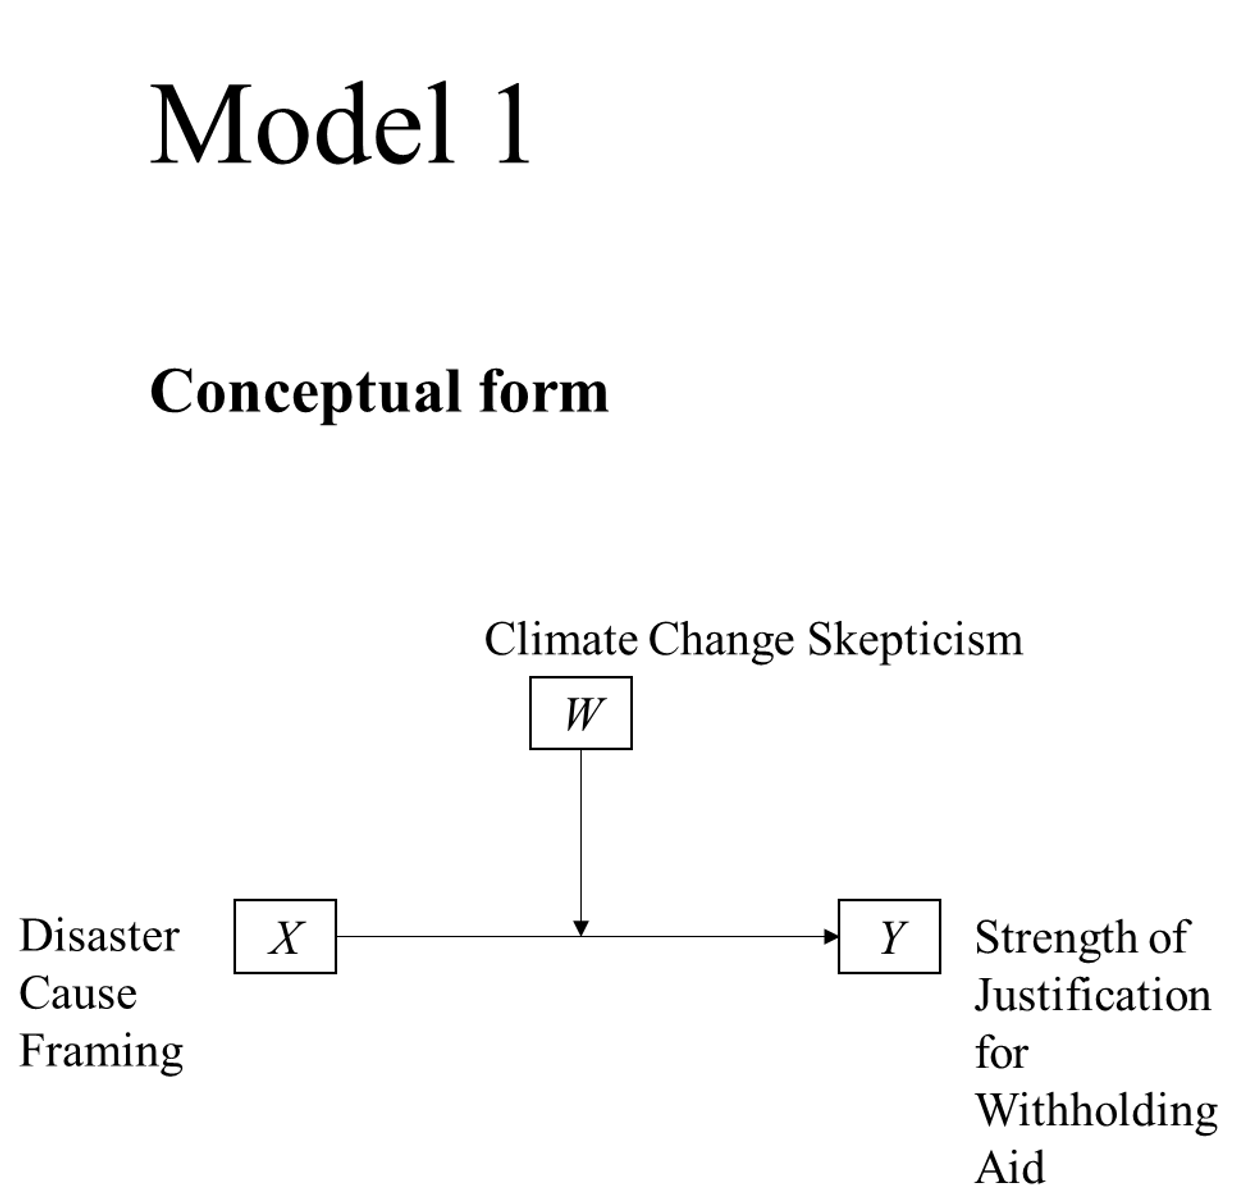 PRODUCT V3 Model 1 Moderation (dich IV in legend - cont W on x-axis)